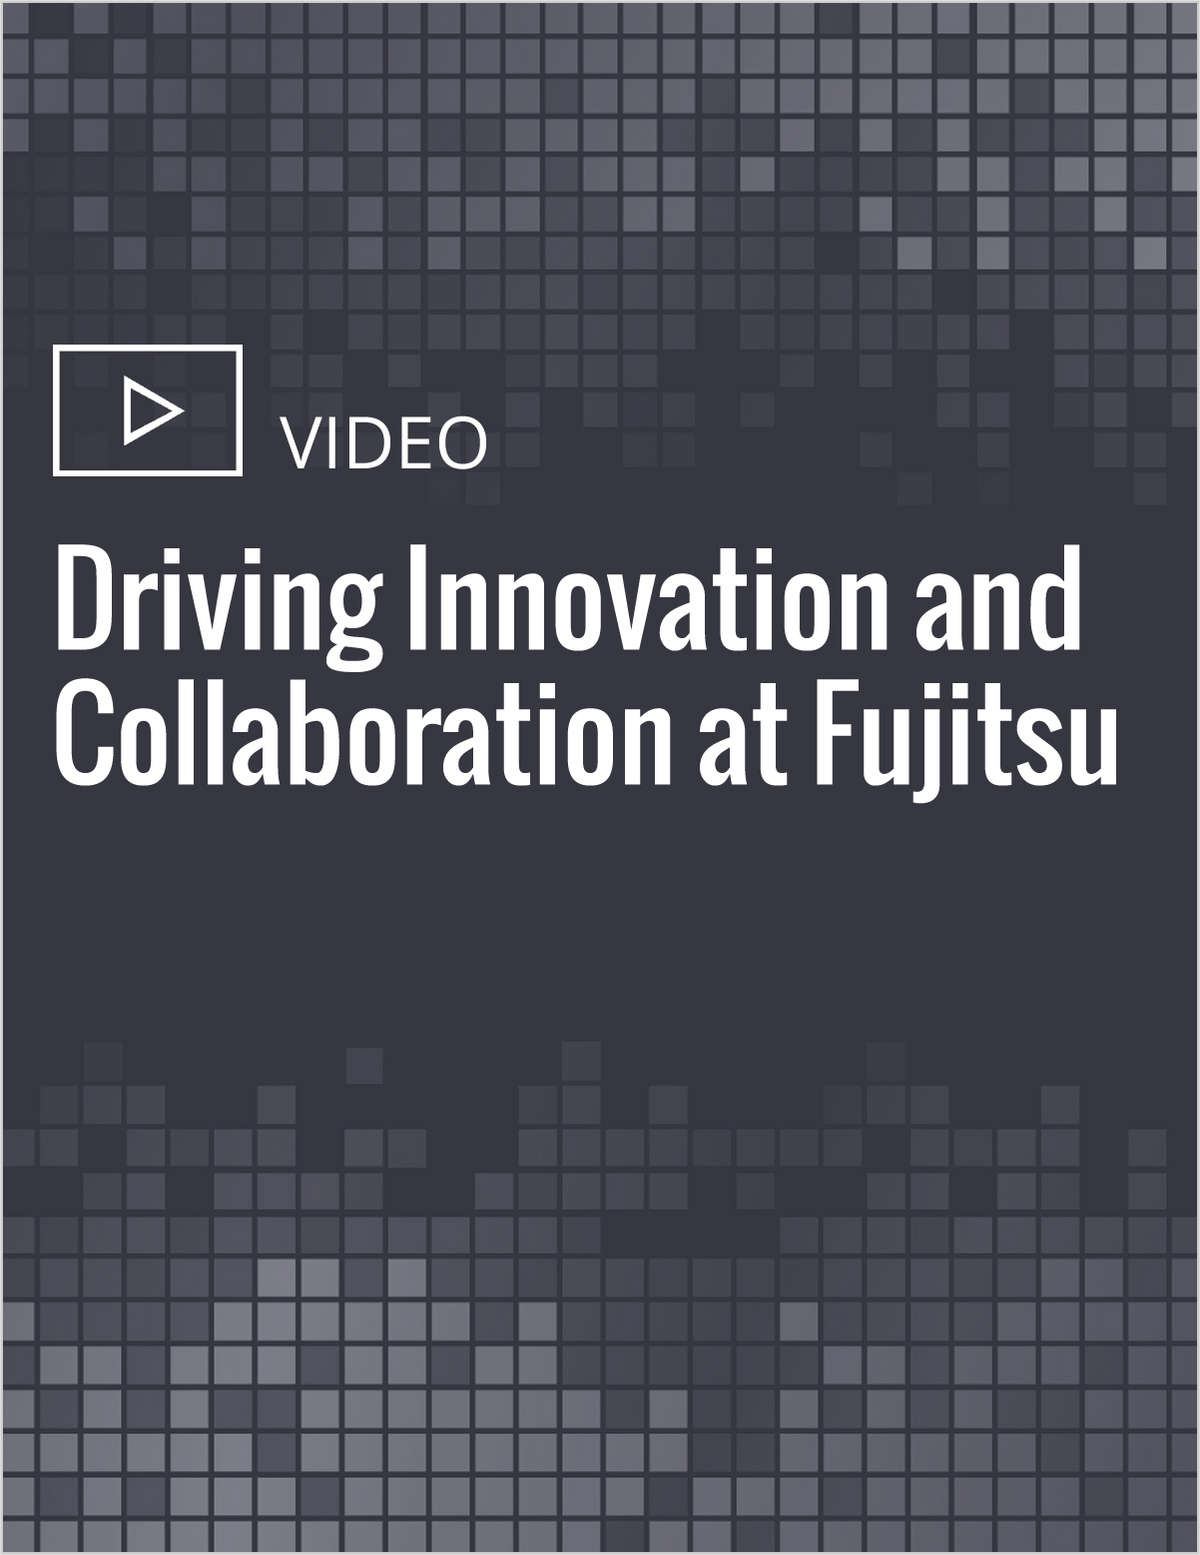 Driving Innovation and Collaboration at Fujitsu